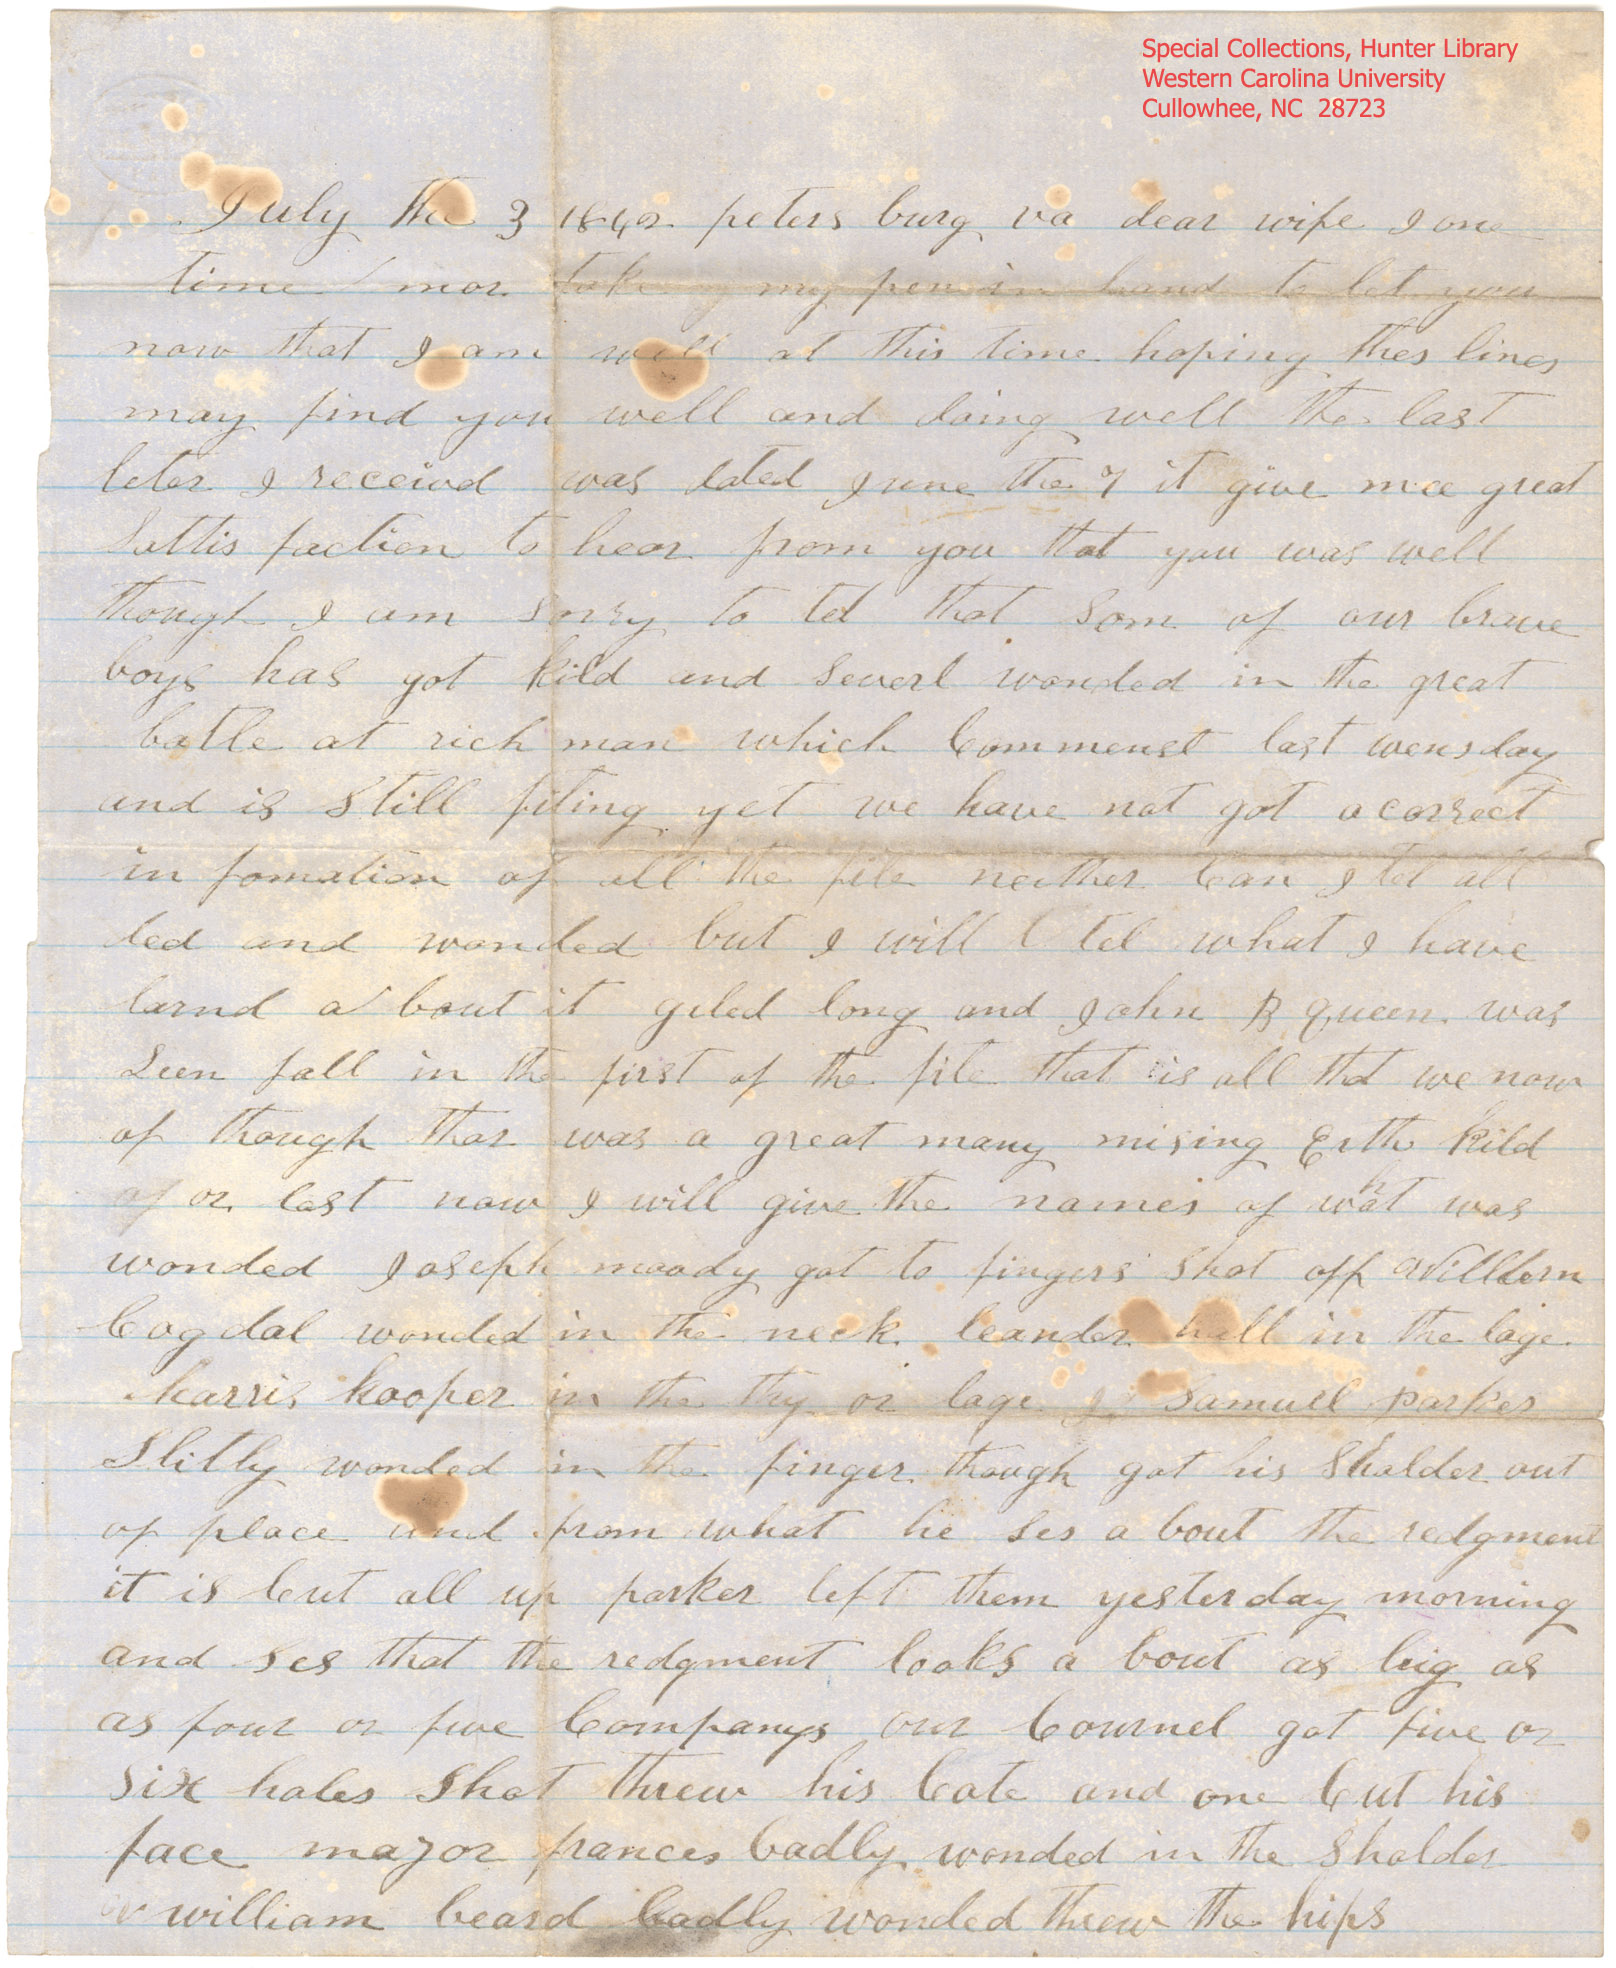 Page 1 of letter from MW Parris to Jane Parris